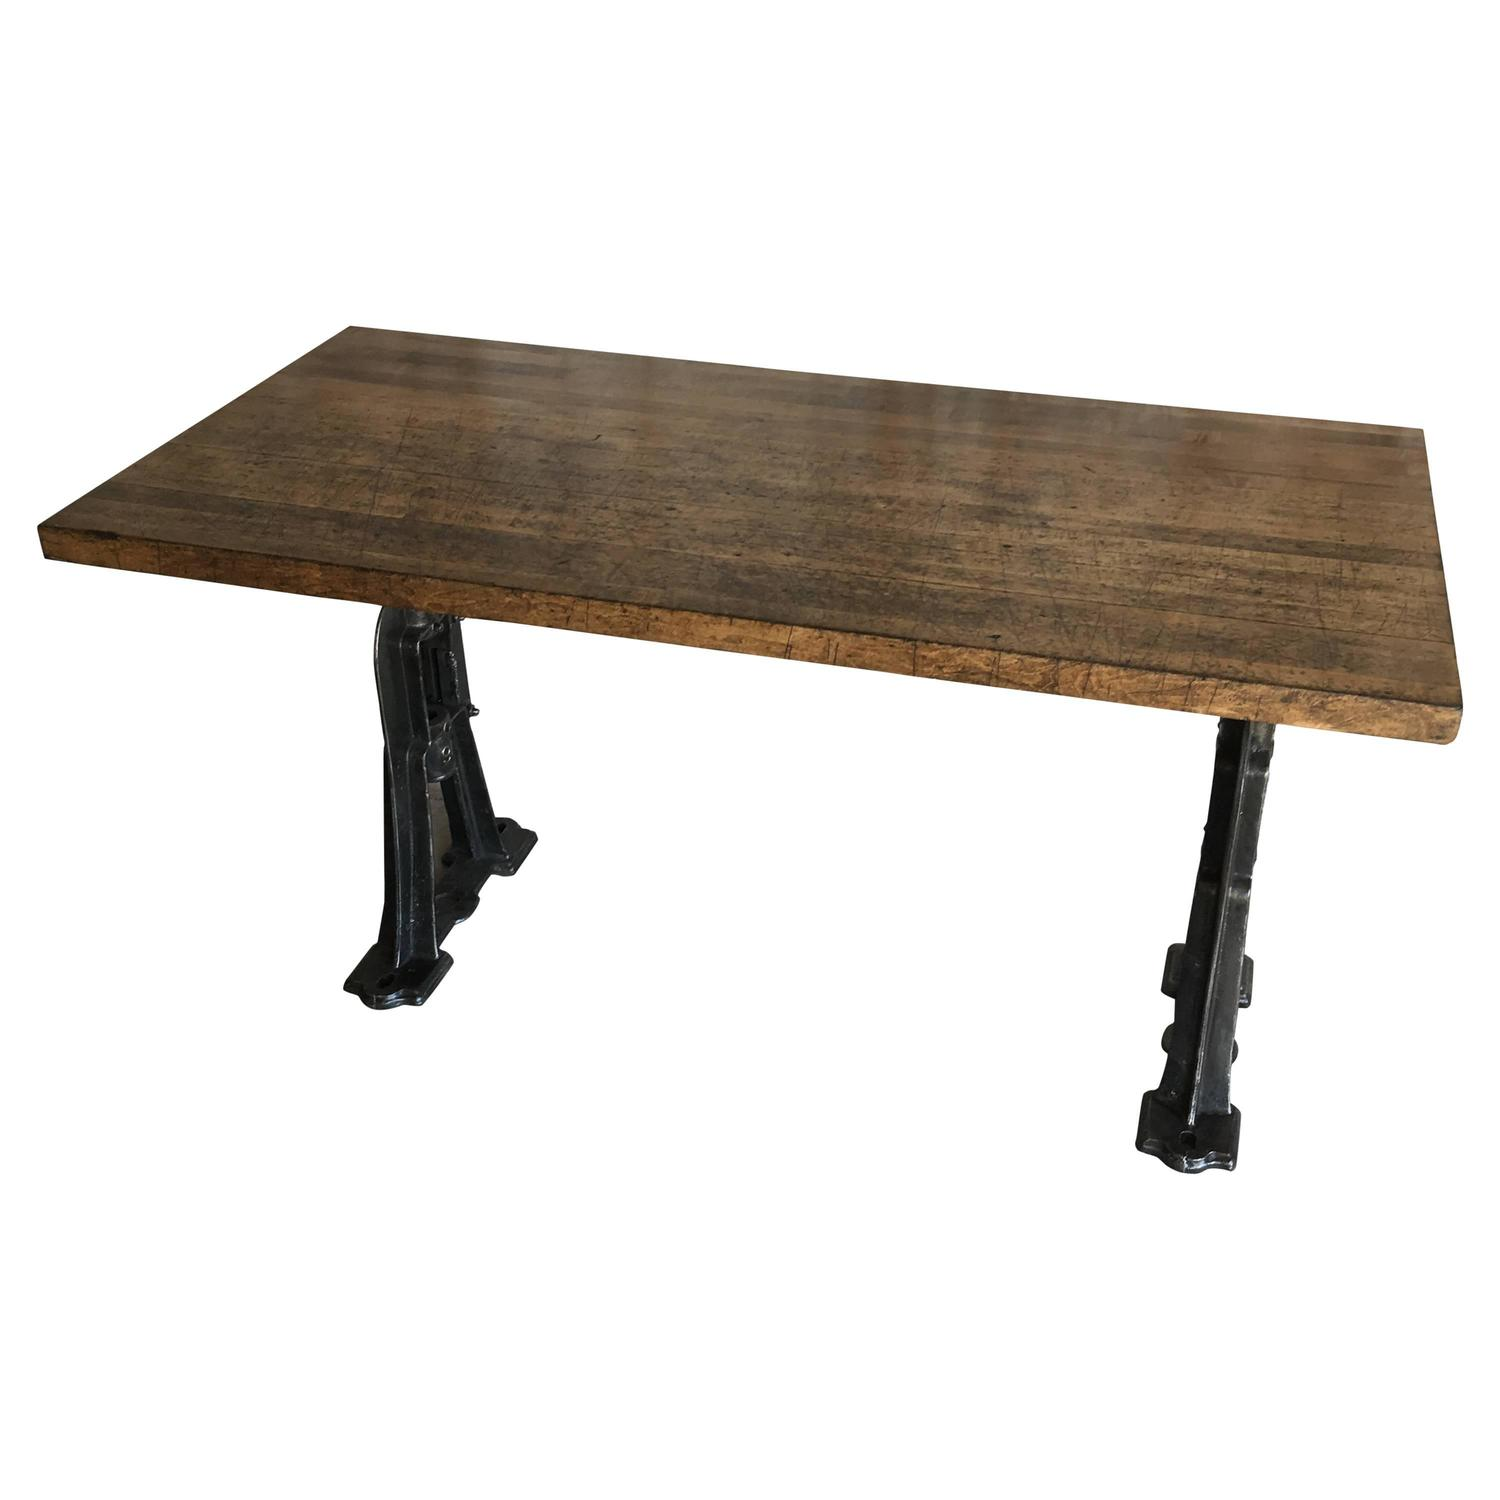 Industrial cast iron base dining room table for sale at for Dining table base